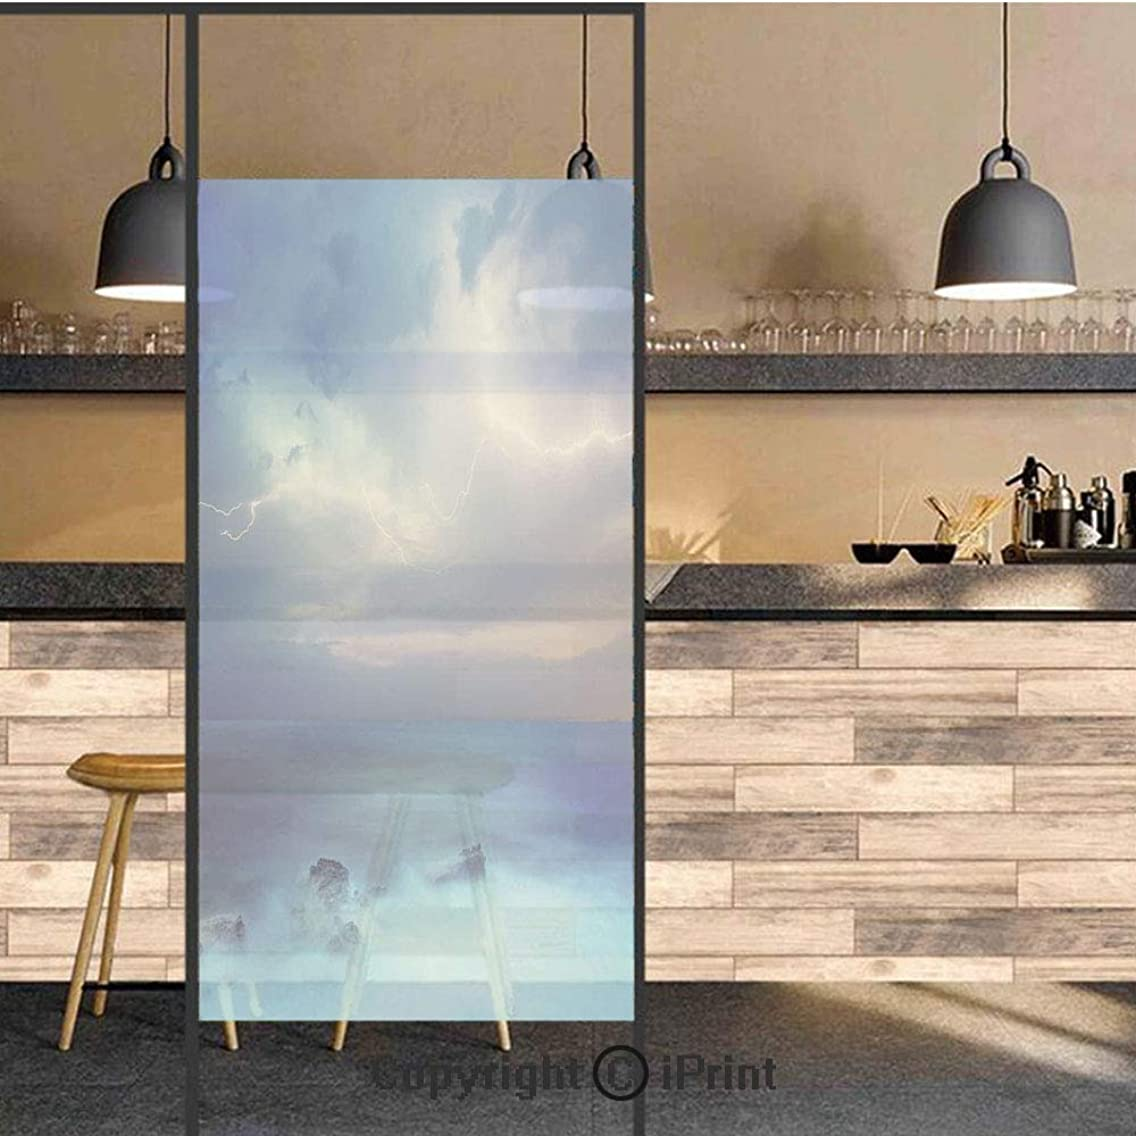 3D Decorative Privacy Window Films,Rocks in the Tropical Ocean and Big Dense Flashes in the Air Forces of Nature Art,No-Glue Self Static Cling Glass film for Home Bedroom Bathroom Kitchen Office 24x71